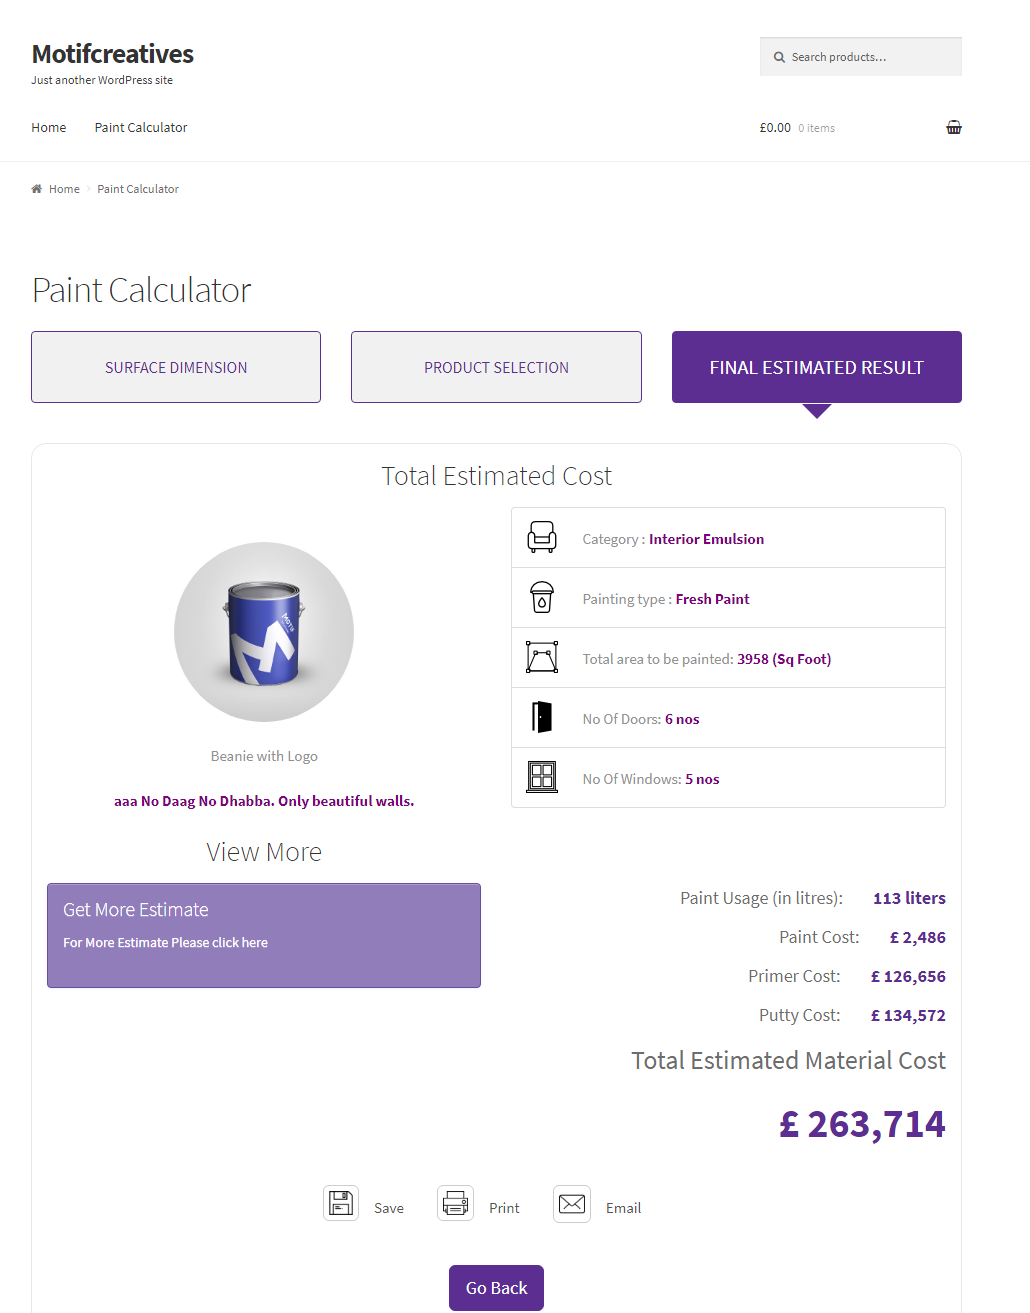 Woocommerce Paint Cost Estimator   CodeCanyon Item For Sale. 1.png 2.png  3.png 4.png 5.png ...